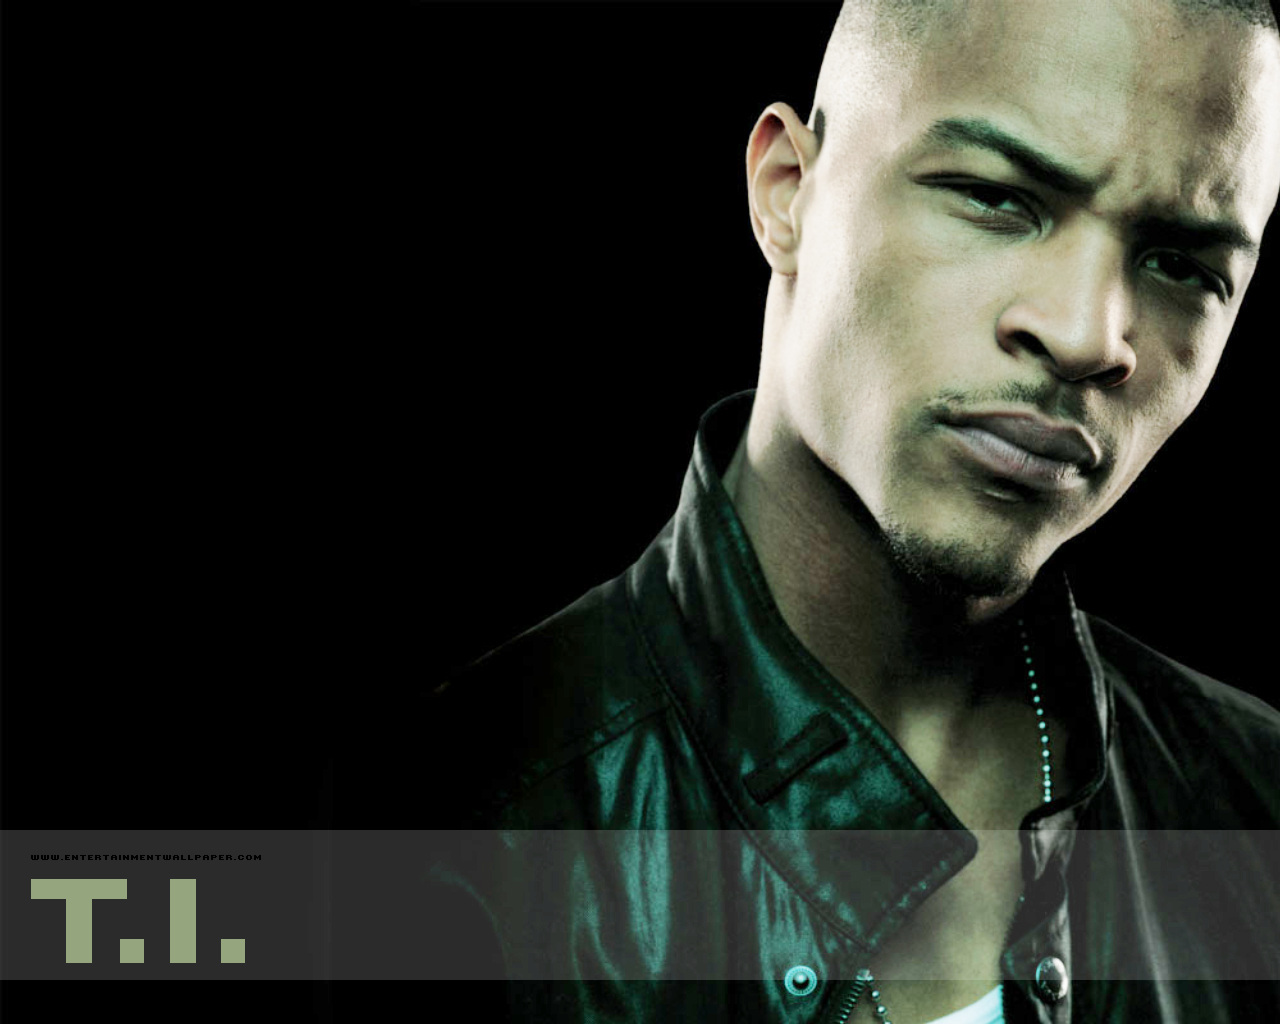 T.I Wallpapers